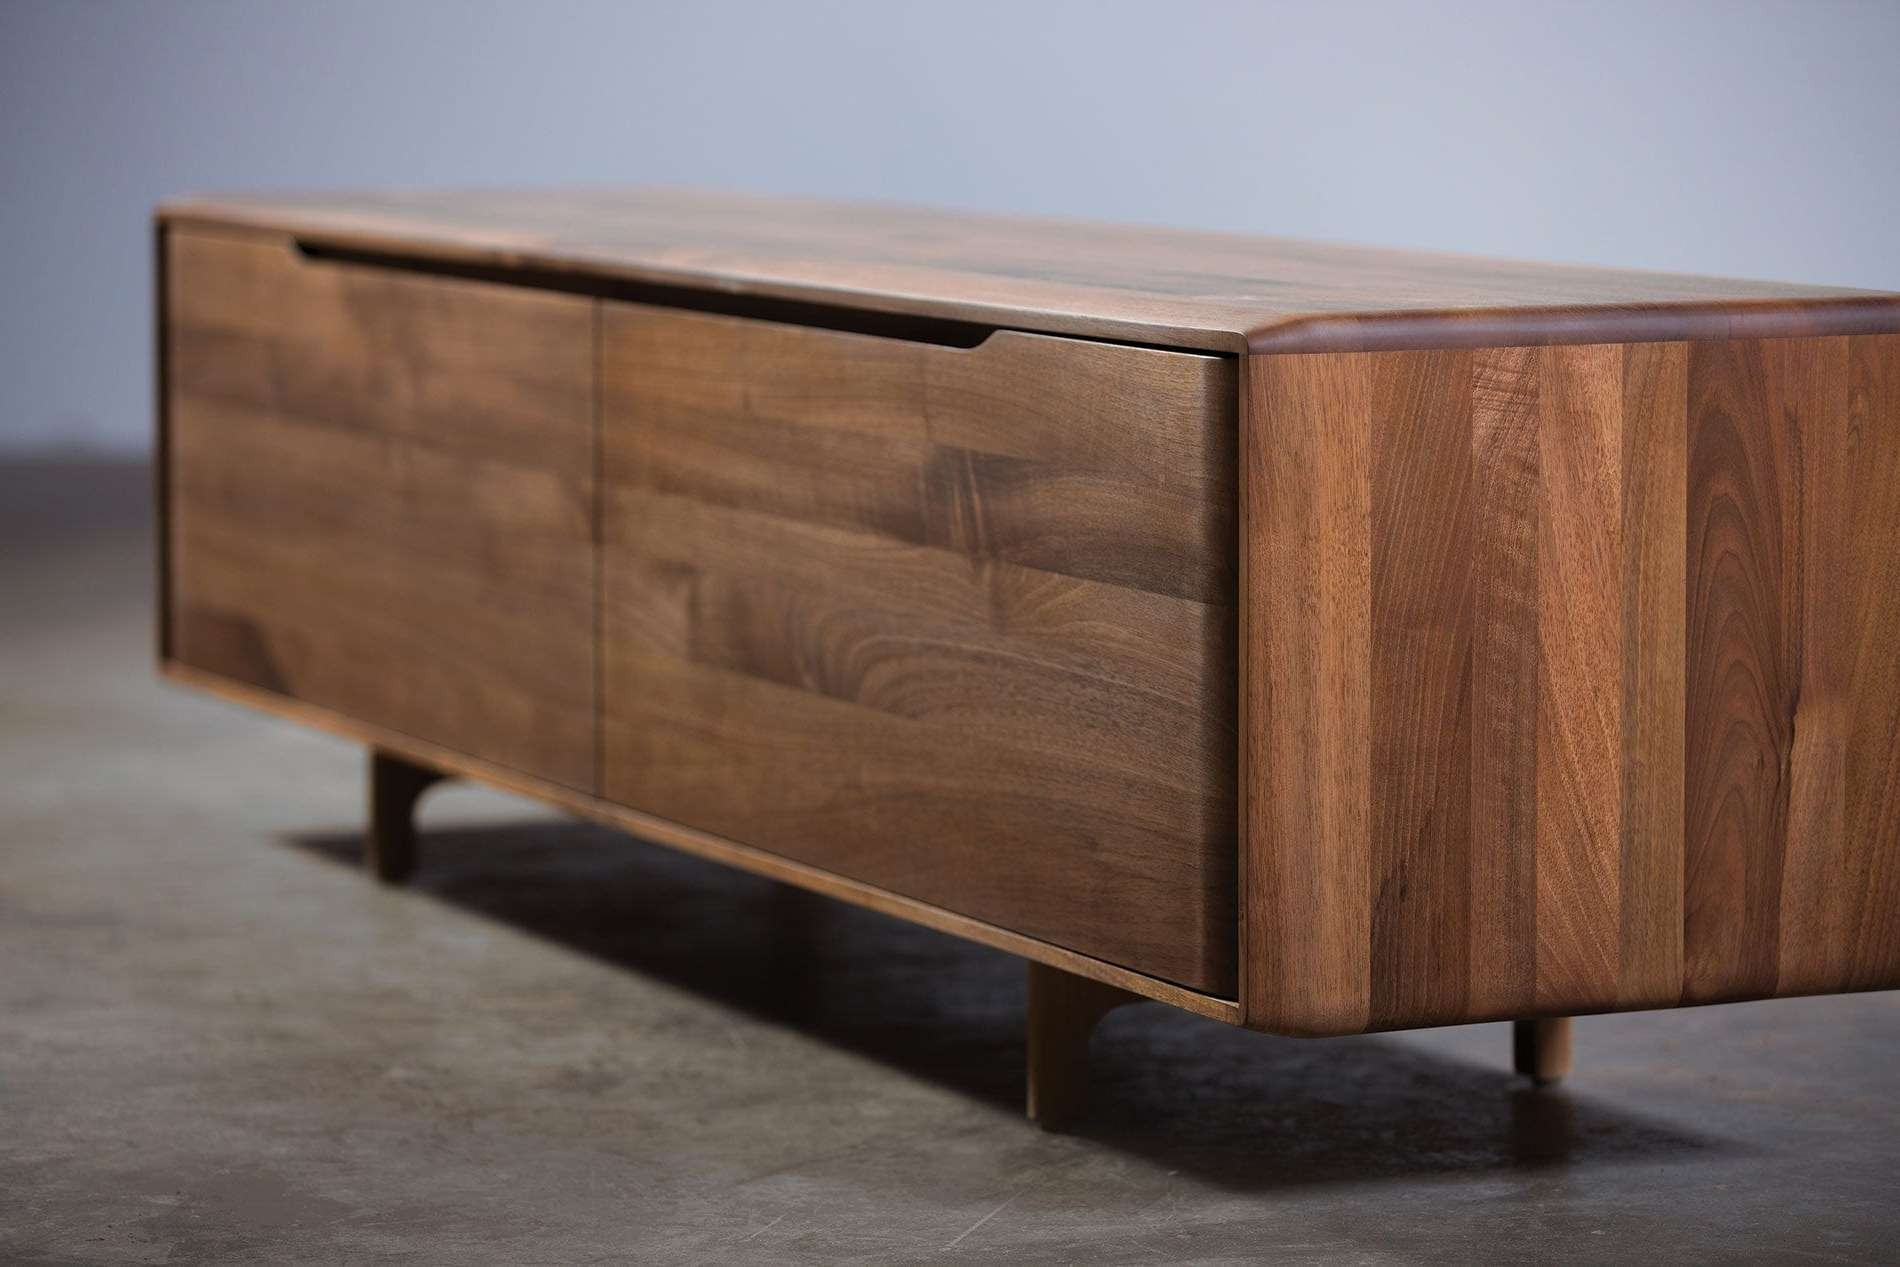 Contemporary Sideboard / Oak / Walnut / Solid Wood – Invito Regarding Real Wood Sideboards (View 2 of 20)